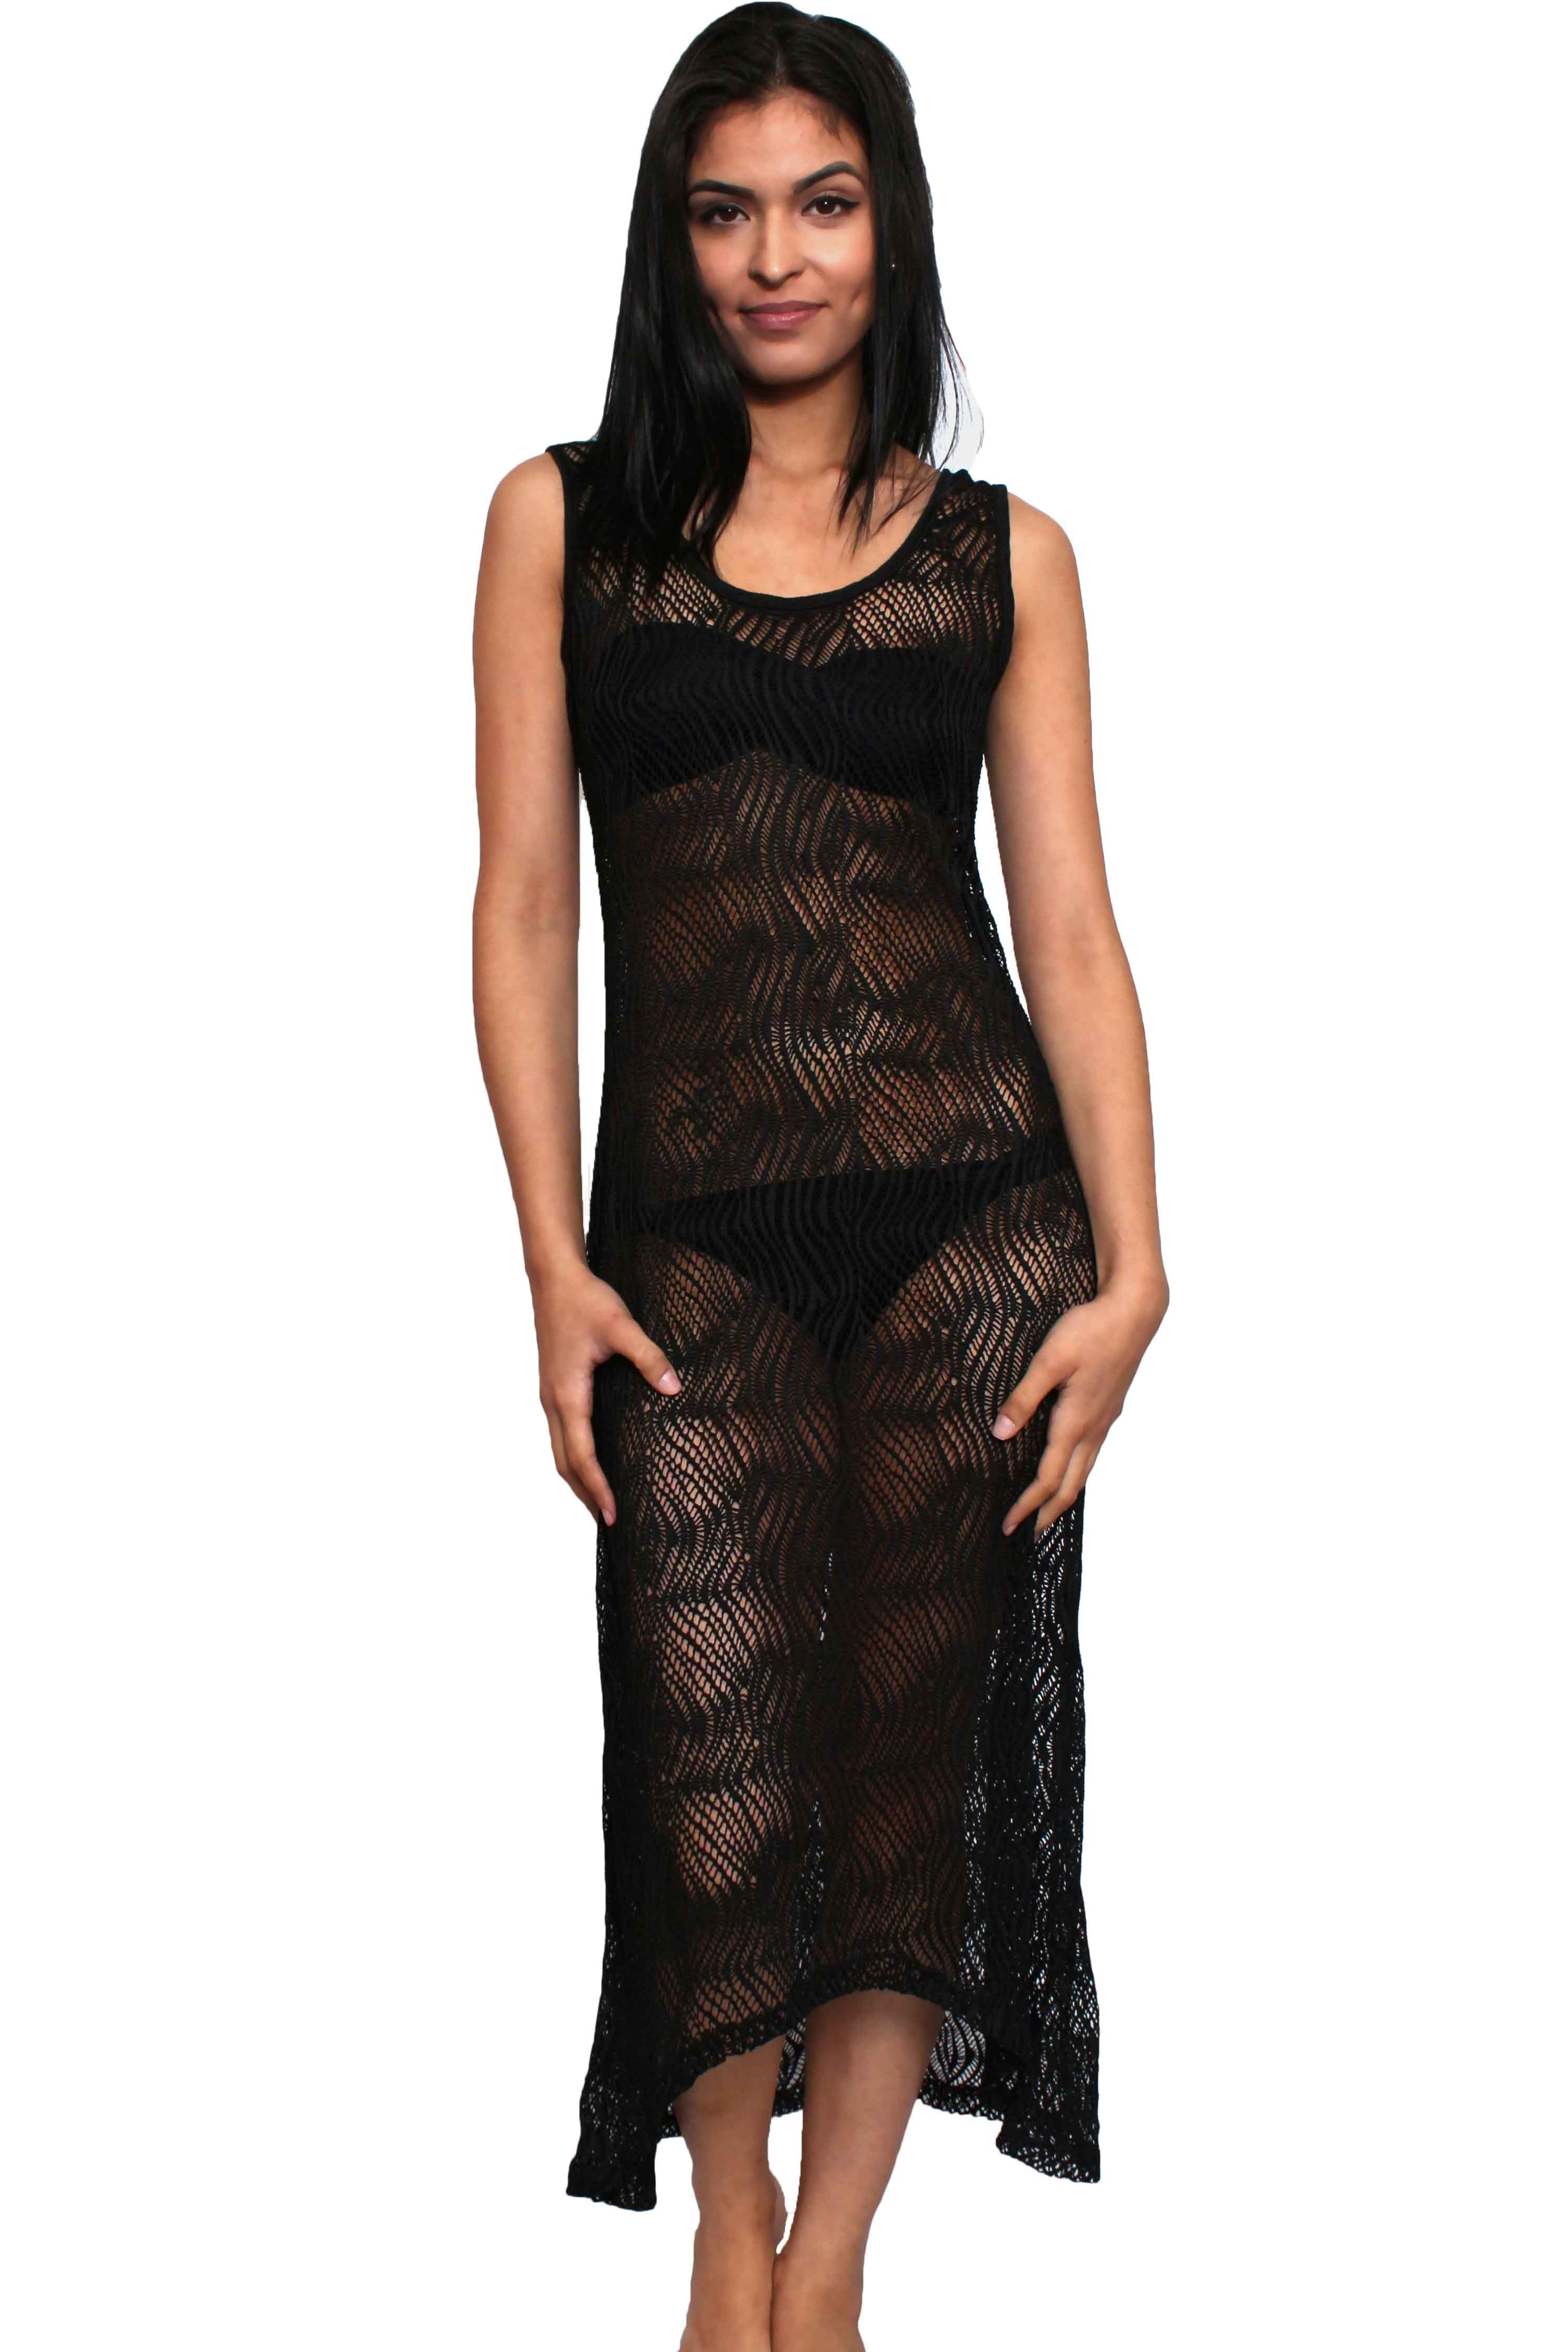 a484261ee8 Women's Juniors Sheer Crochet Long Beach Dress Cover up Made in the US -  SHORETRENDZ